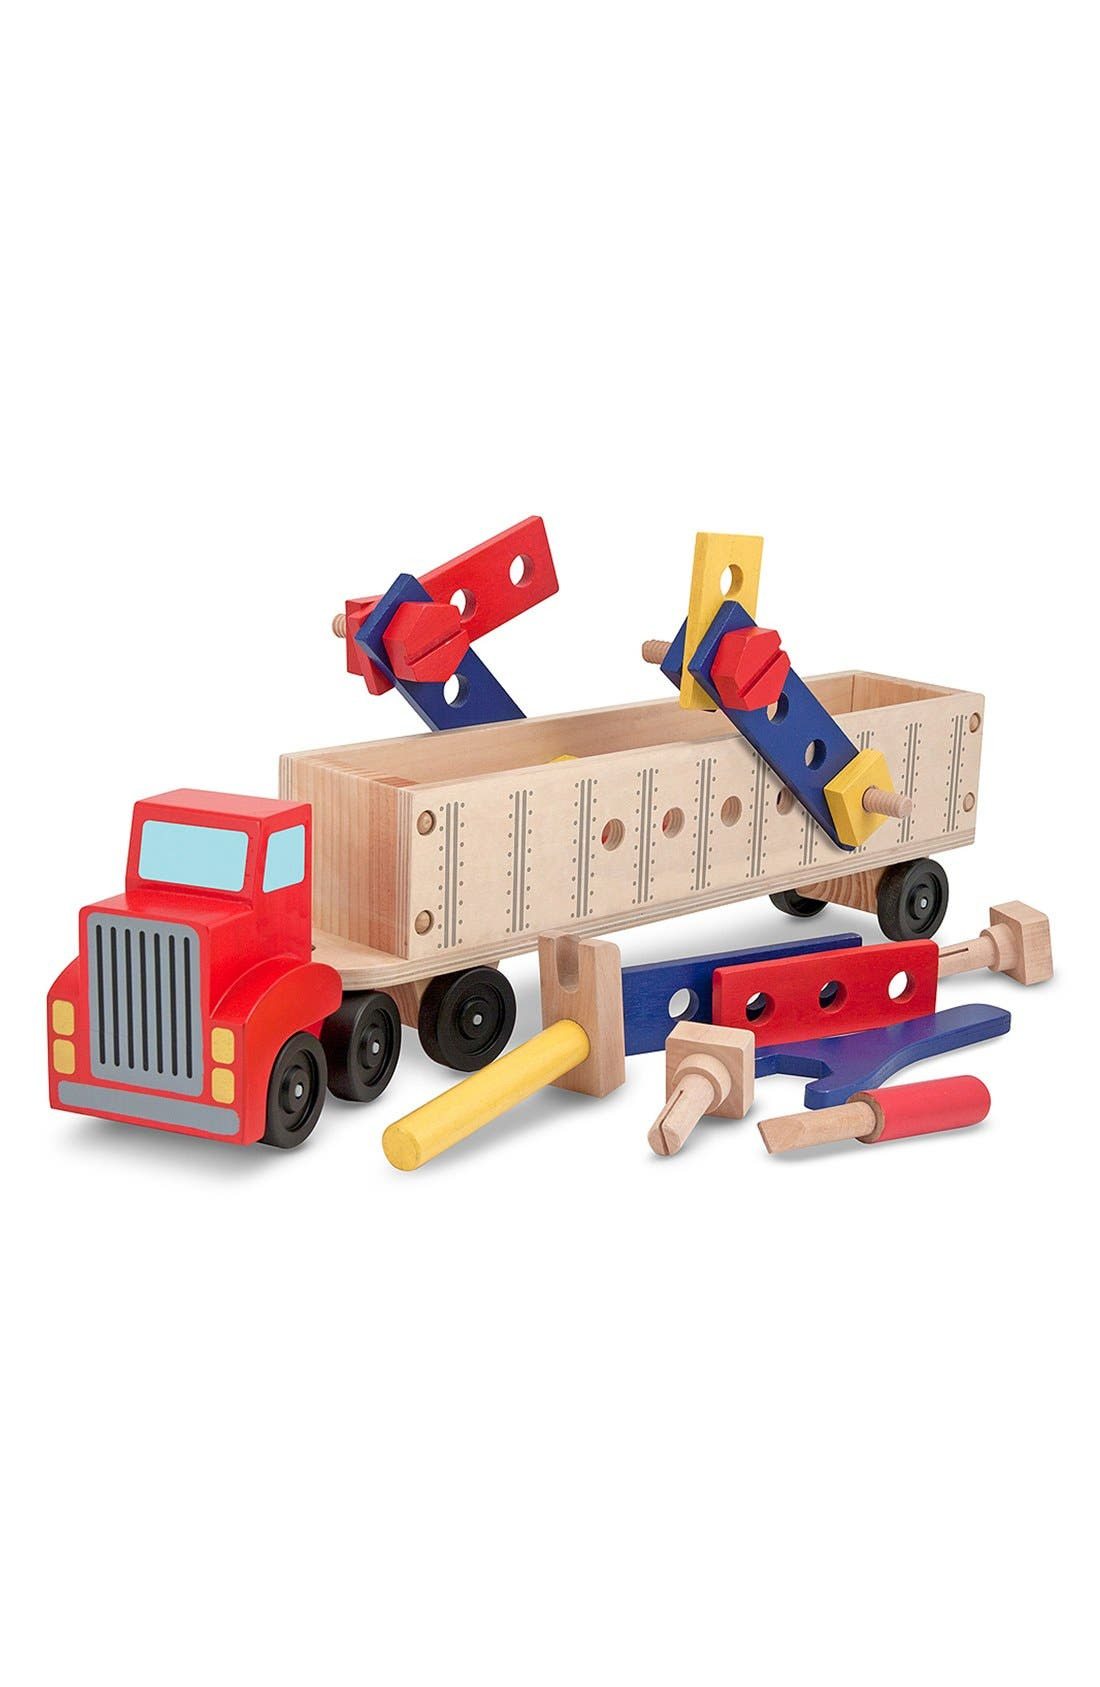 'Big Rig' Personalized Building Set,                             Alternate thumbnail 6, color,                             RED